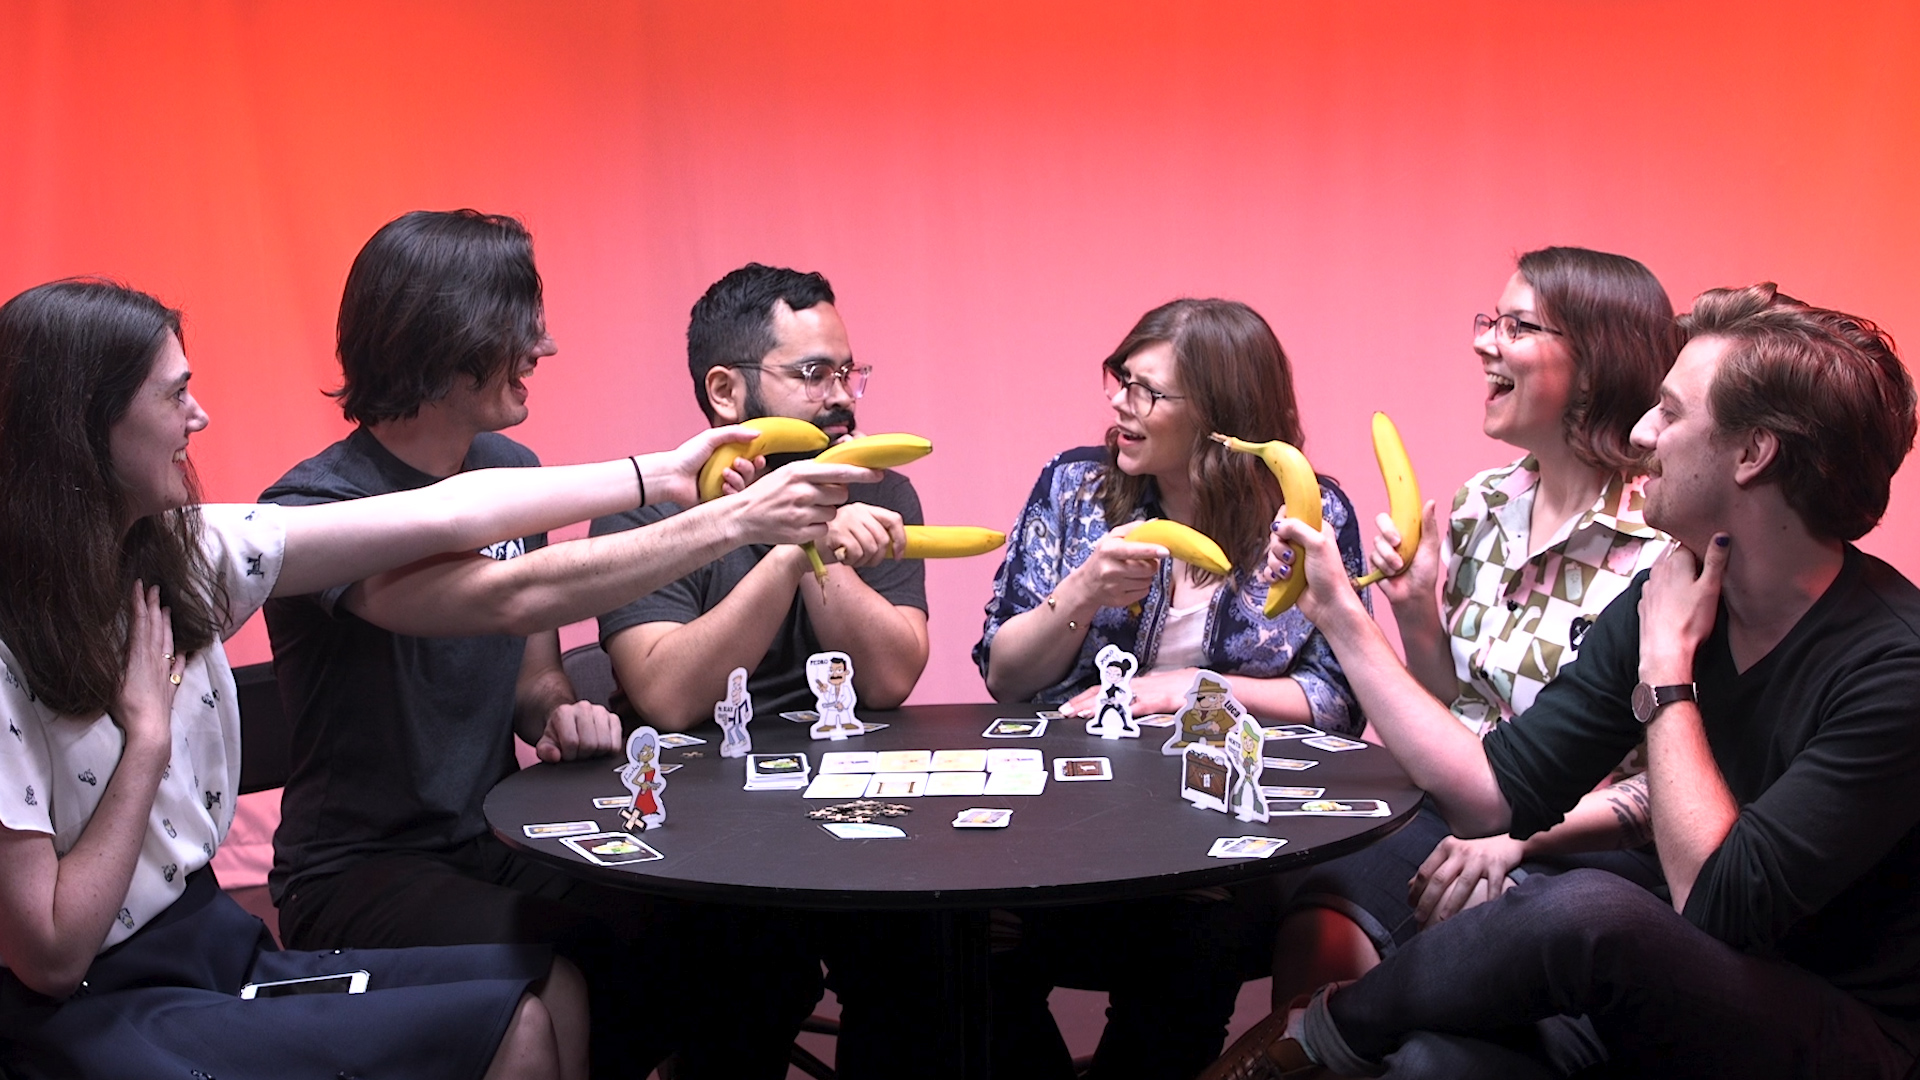 A group of board game players sitting at a table aim bananas at each other.